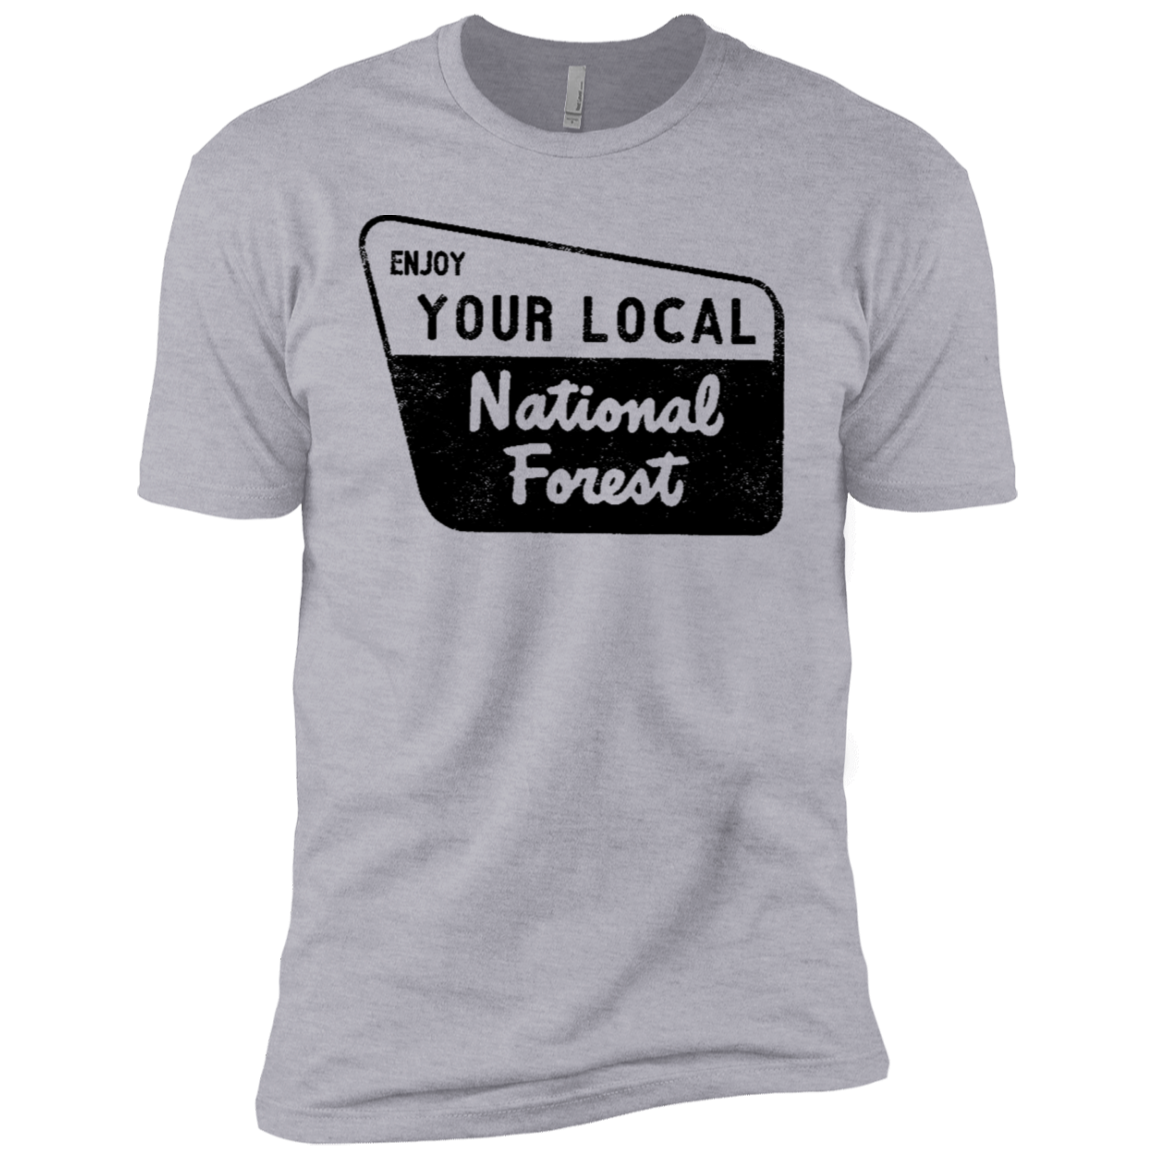 Enjoy Your Local Natonal Forest Men's Classic Tee